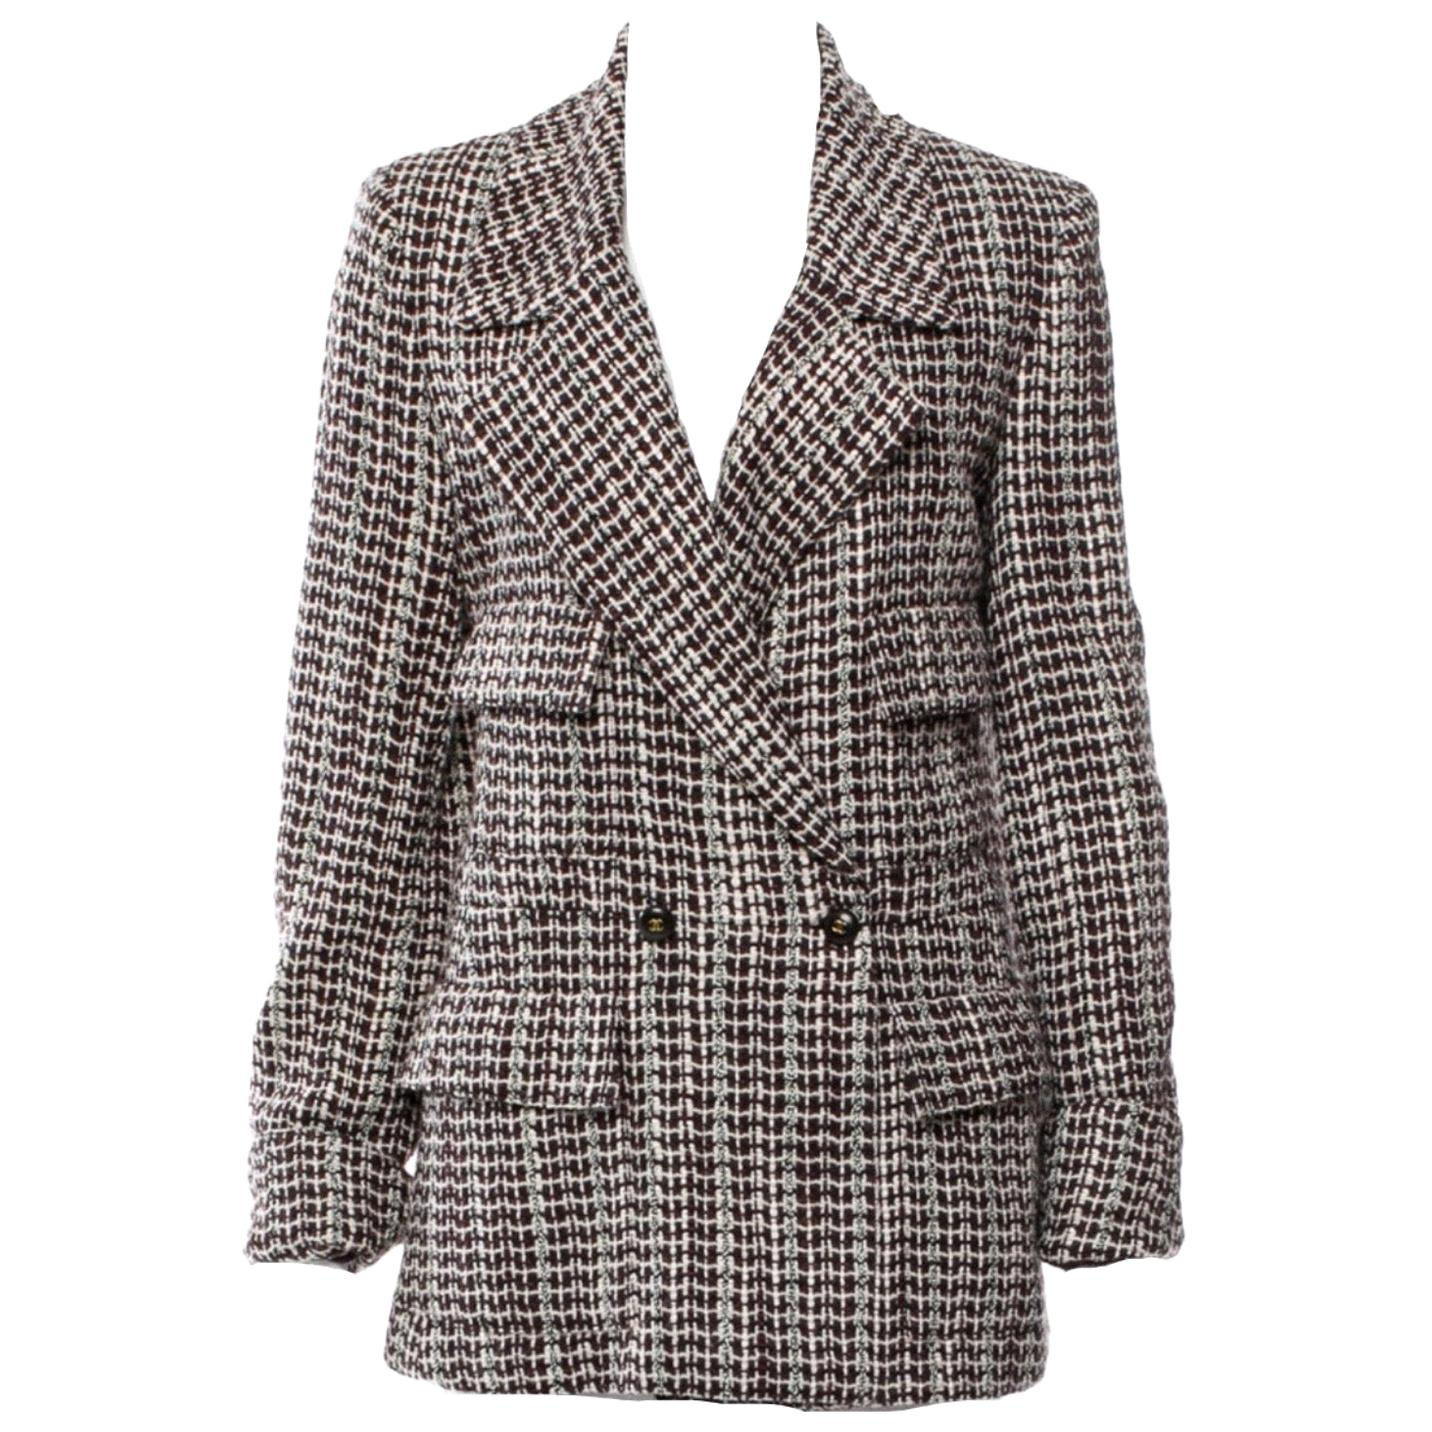 UNWORN Chanel Tweed & Sequins CC Logo Button Short Coat Jacket Blazer